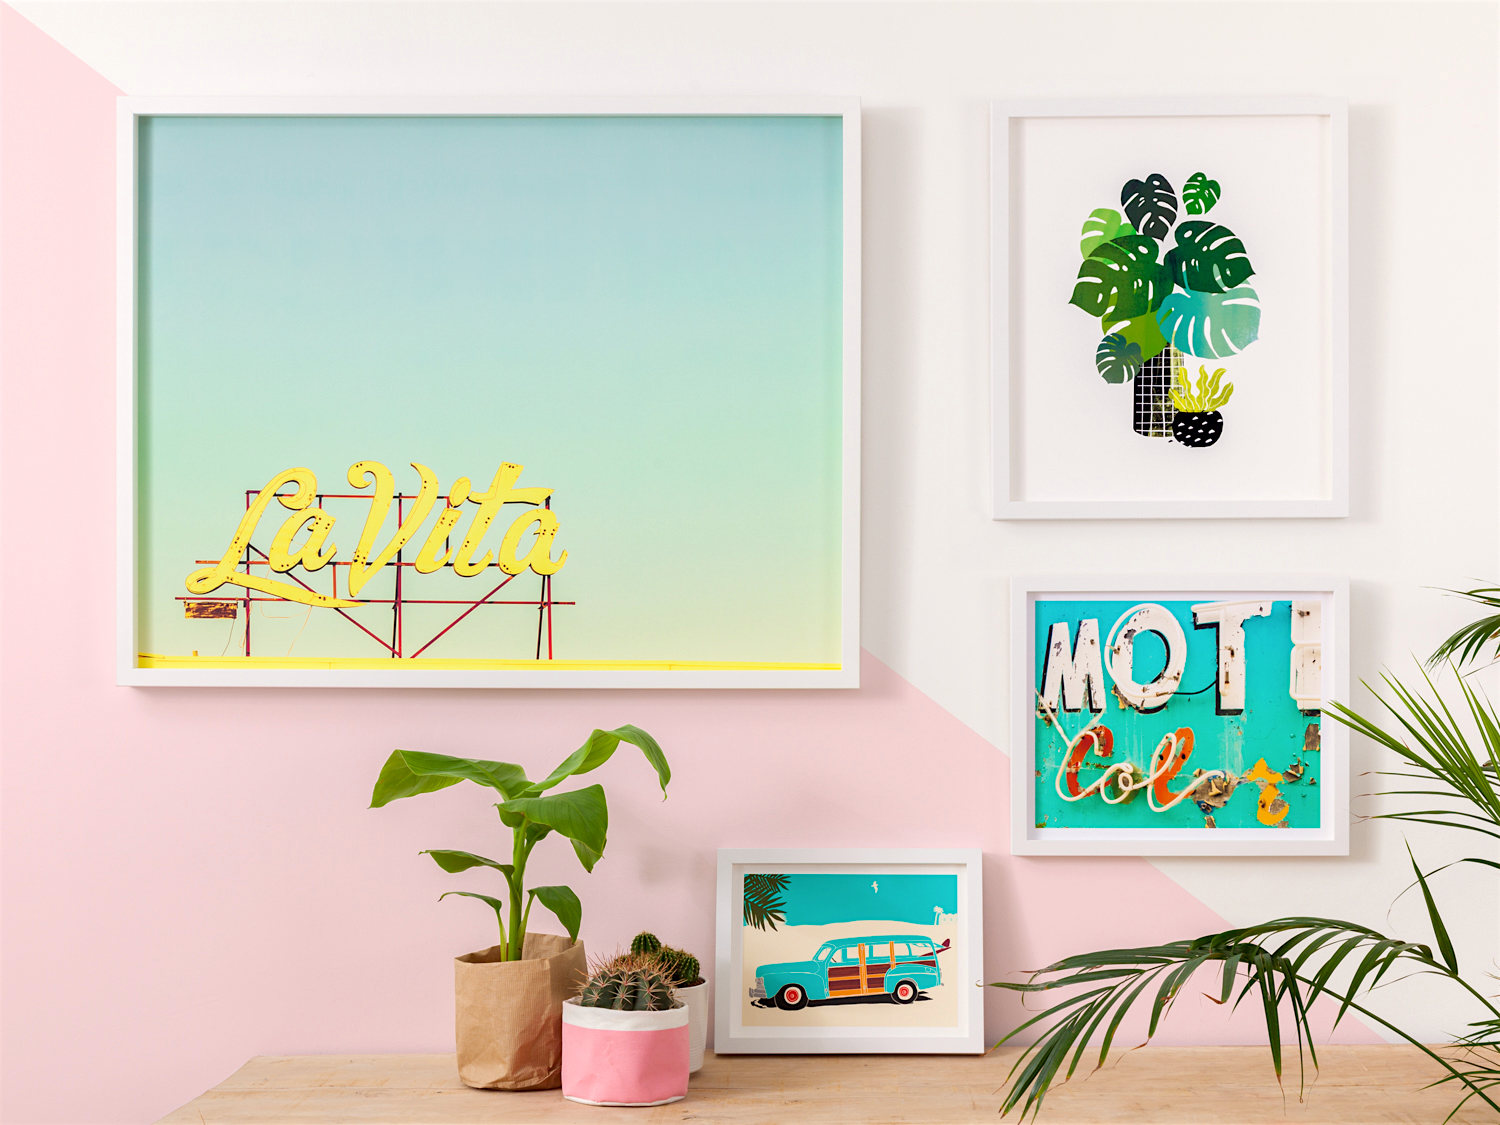 How To Make A Palm Springs Gallery Wall King Amp Mcgaw